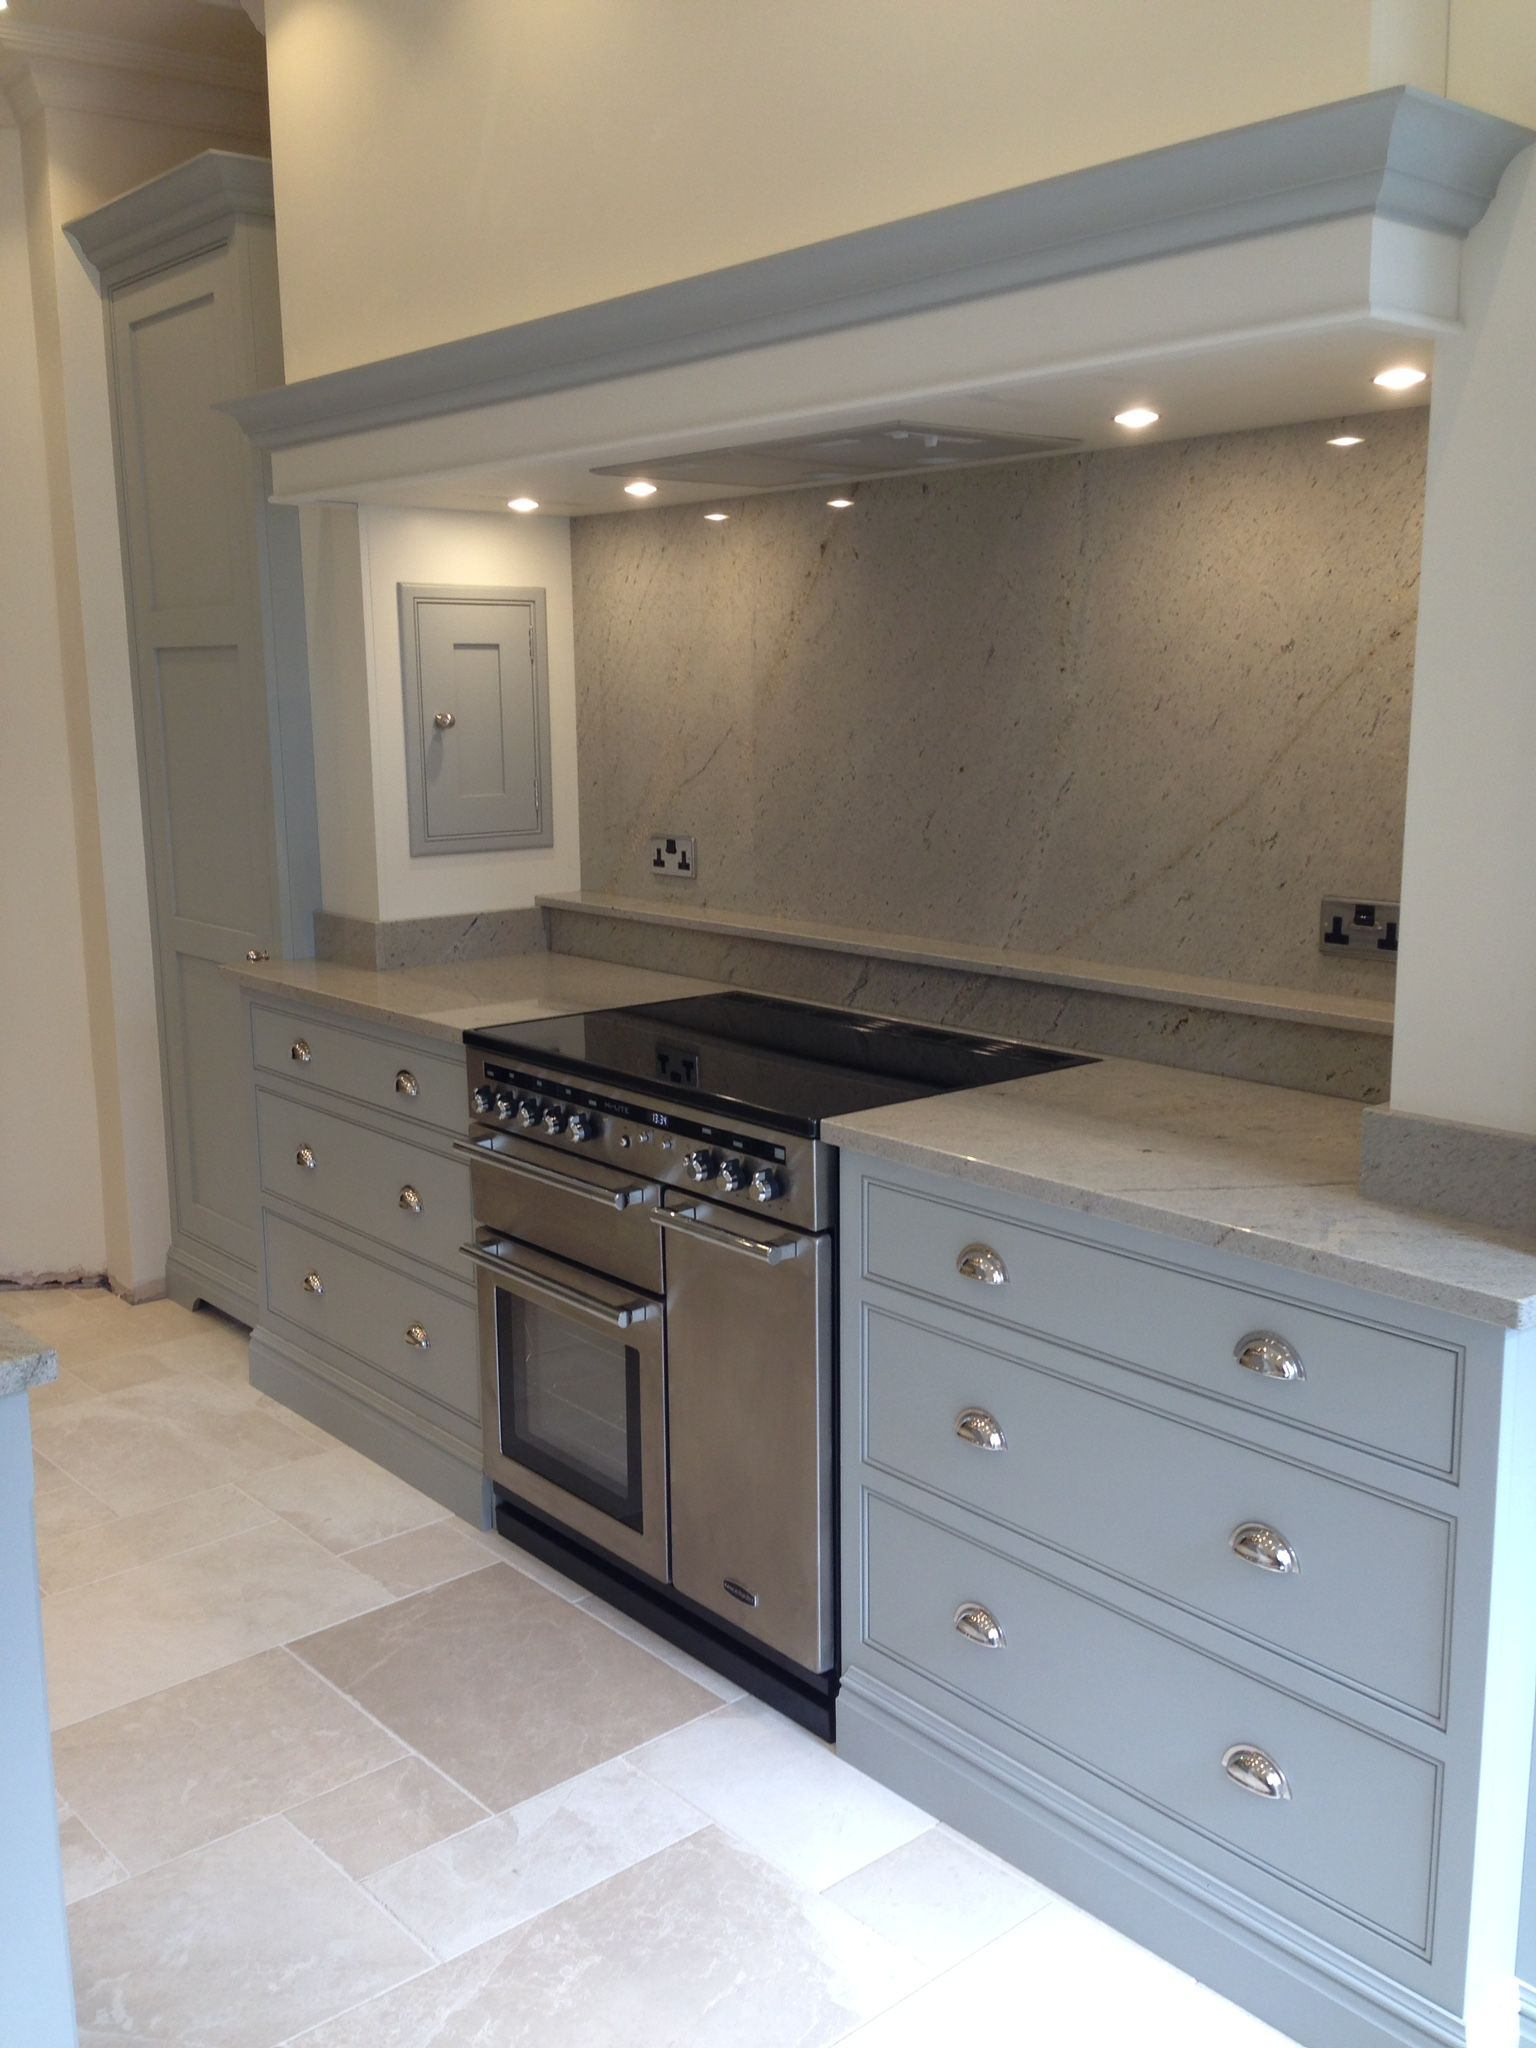 Tom Howley Kitchen With Images Kitchen Cooker Hood Home Kitchens Kitchen Cooker